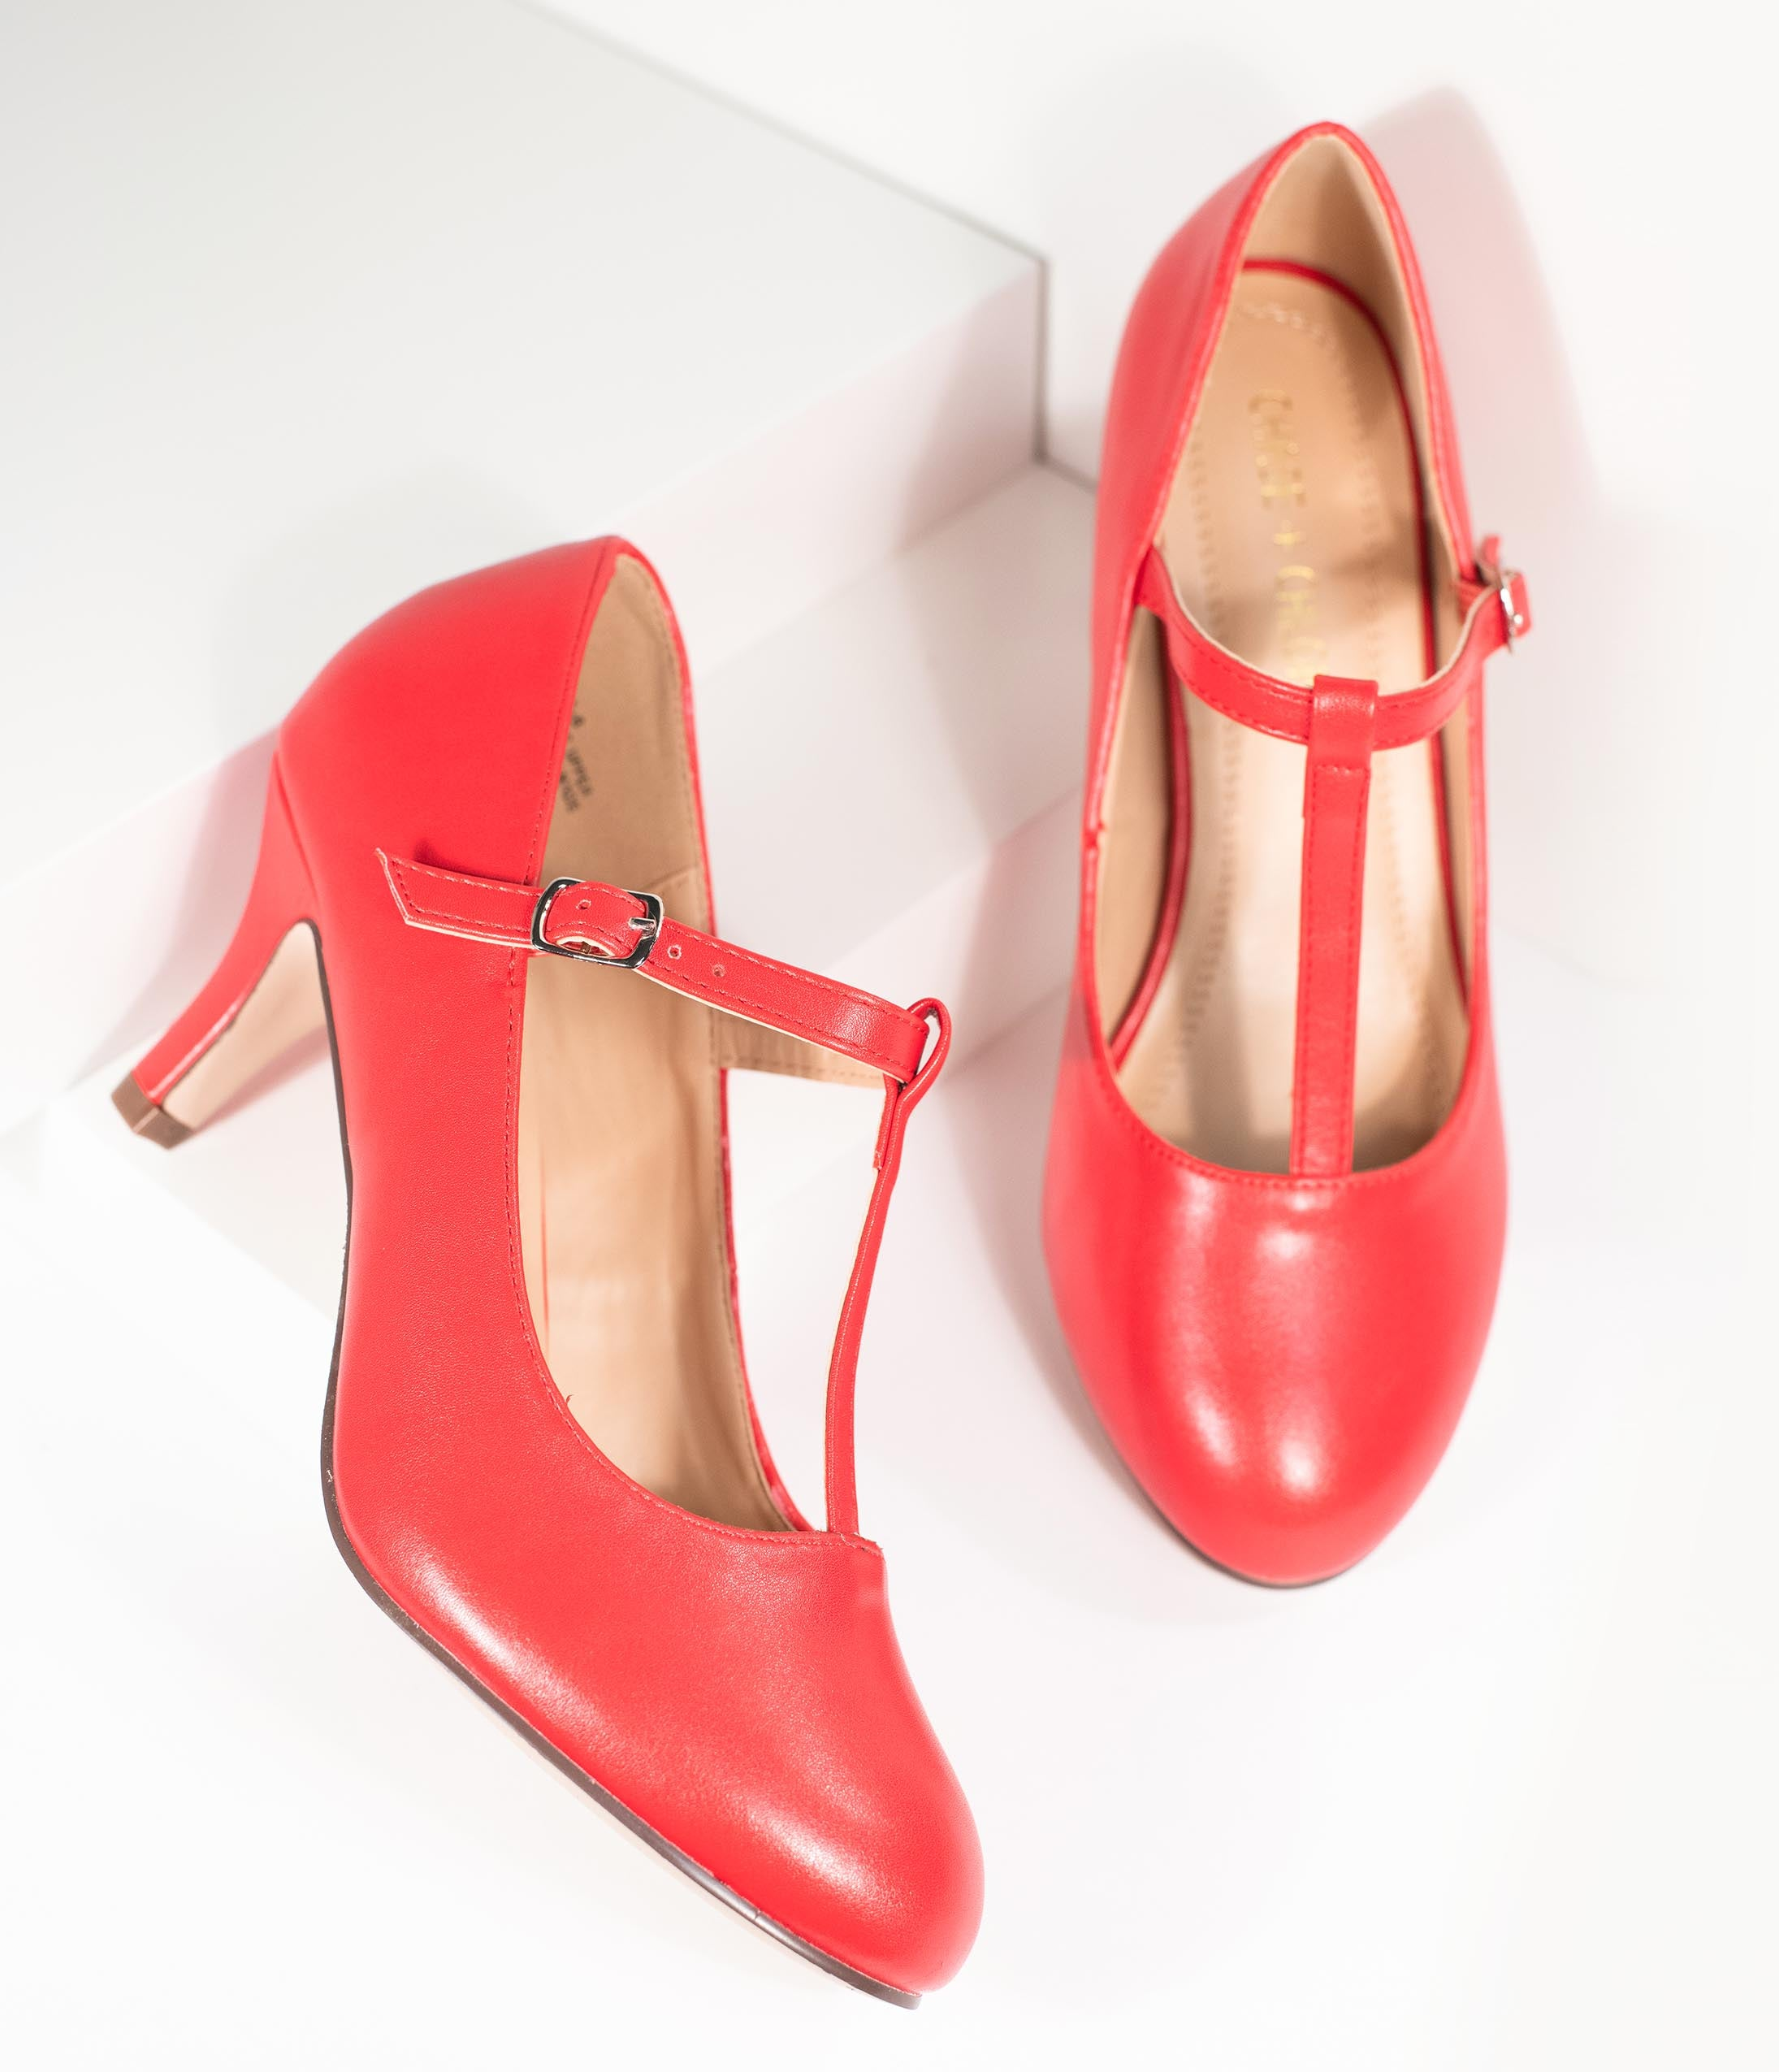 1950s Shoe Styles: Heels, Flats, Sandals, Saddles Shoes Vintage Style Red Leatherette T-Strap Heels $46.00 AT vintagedancer.com